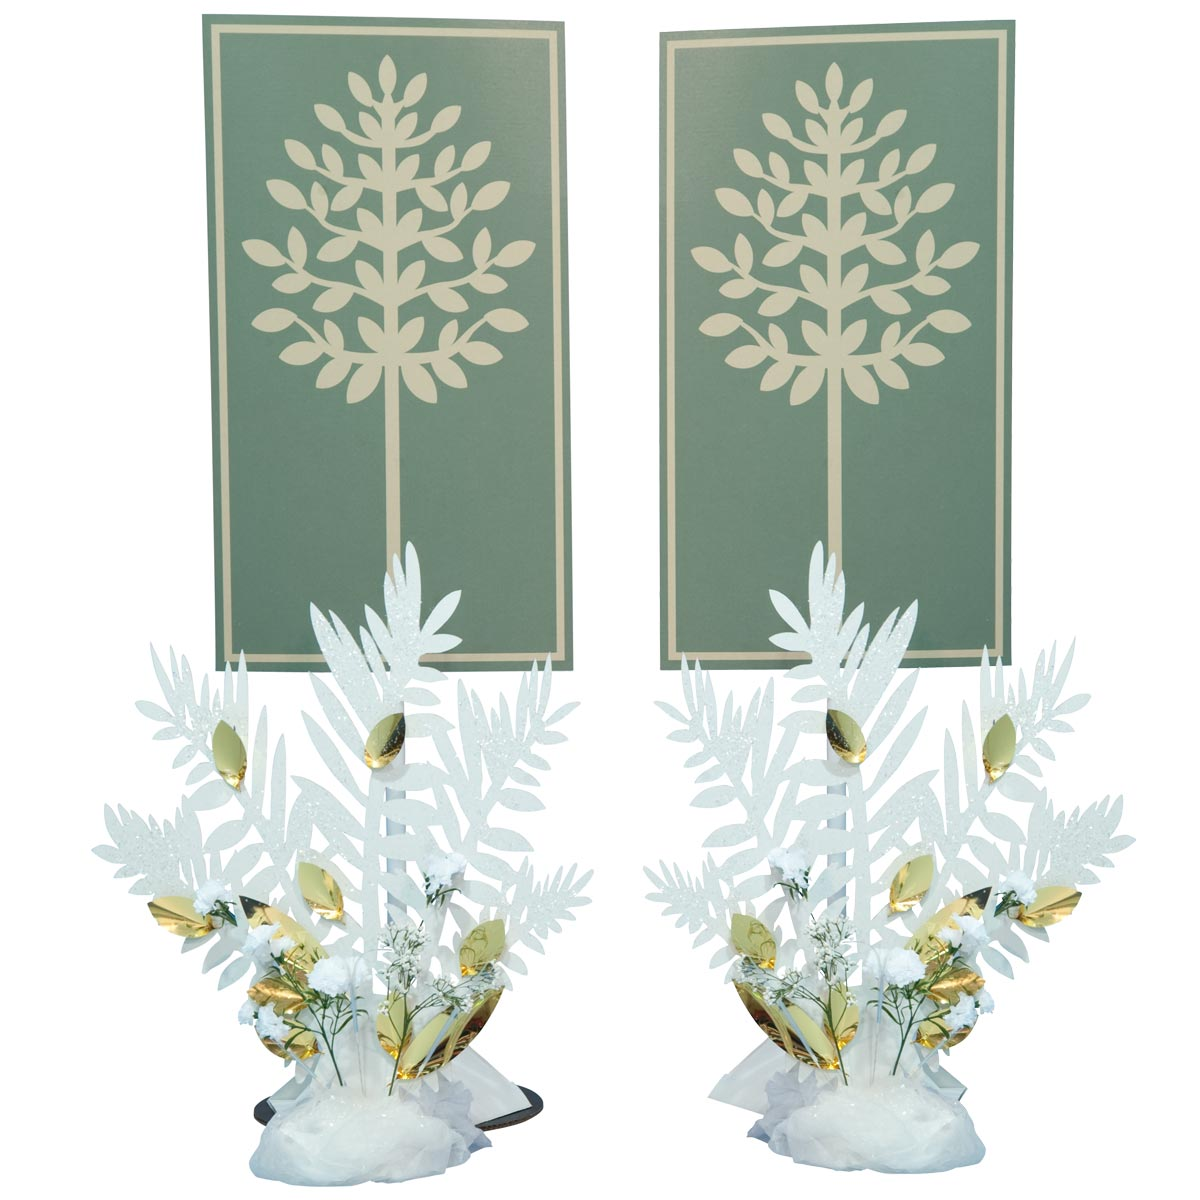 Love at First Sight Leaf Panel Stands Kit (set of 2)